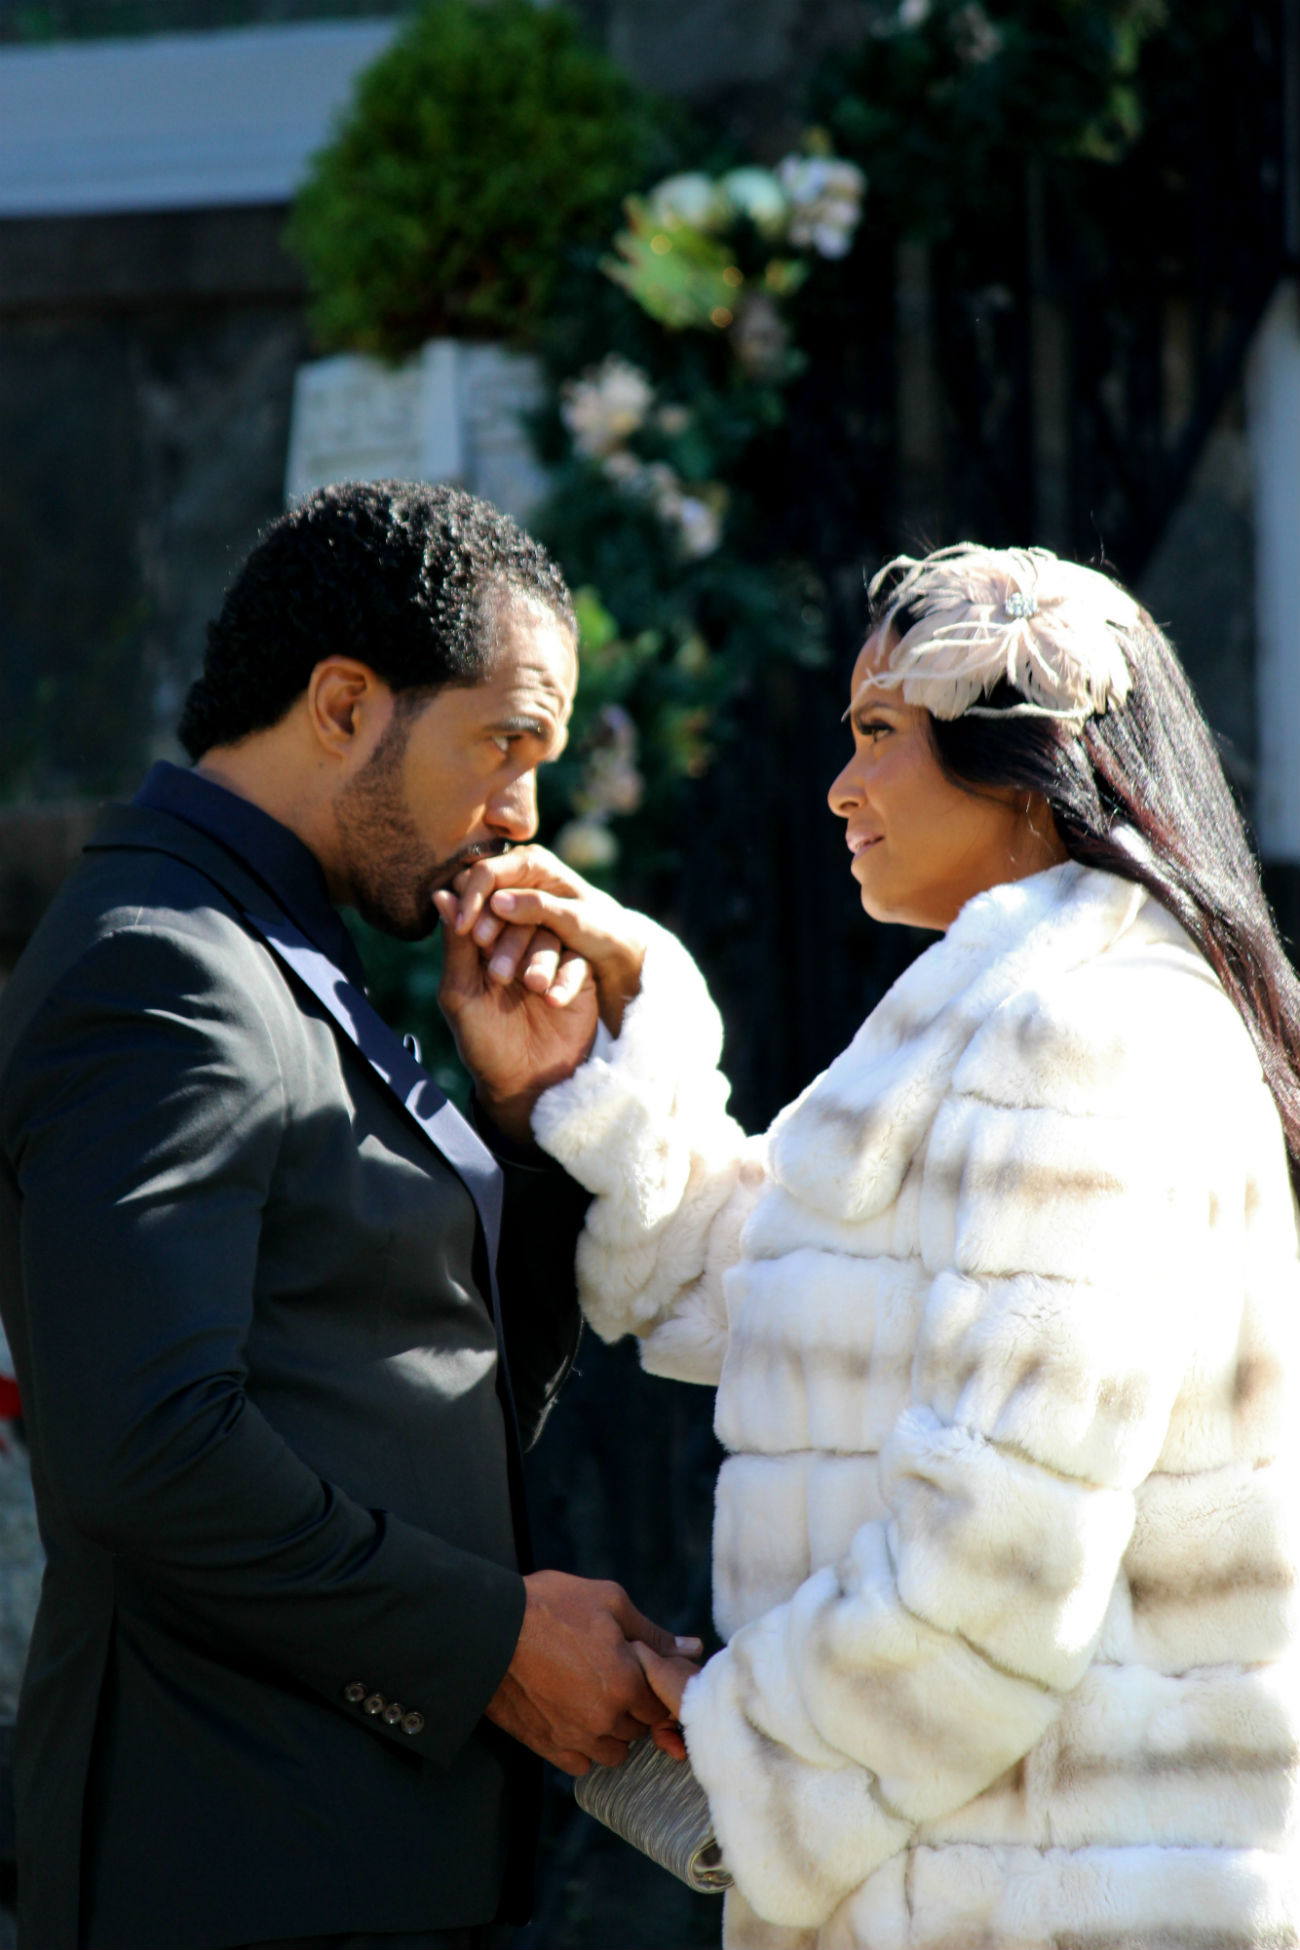 Marry US For Christmas Kristoff St John With Victoria